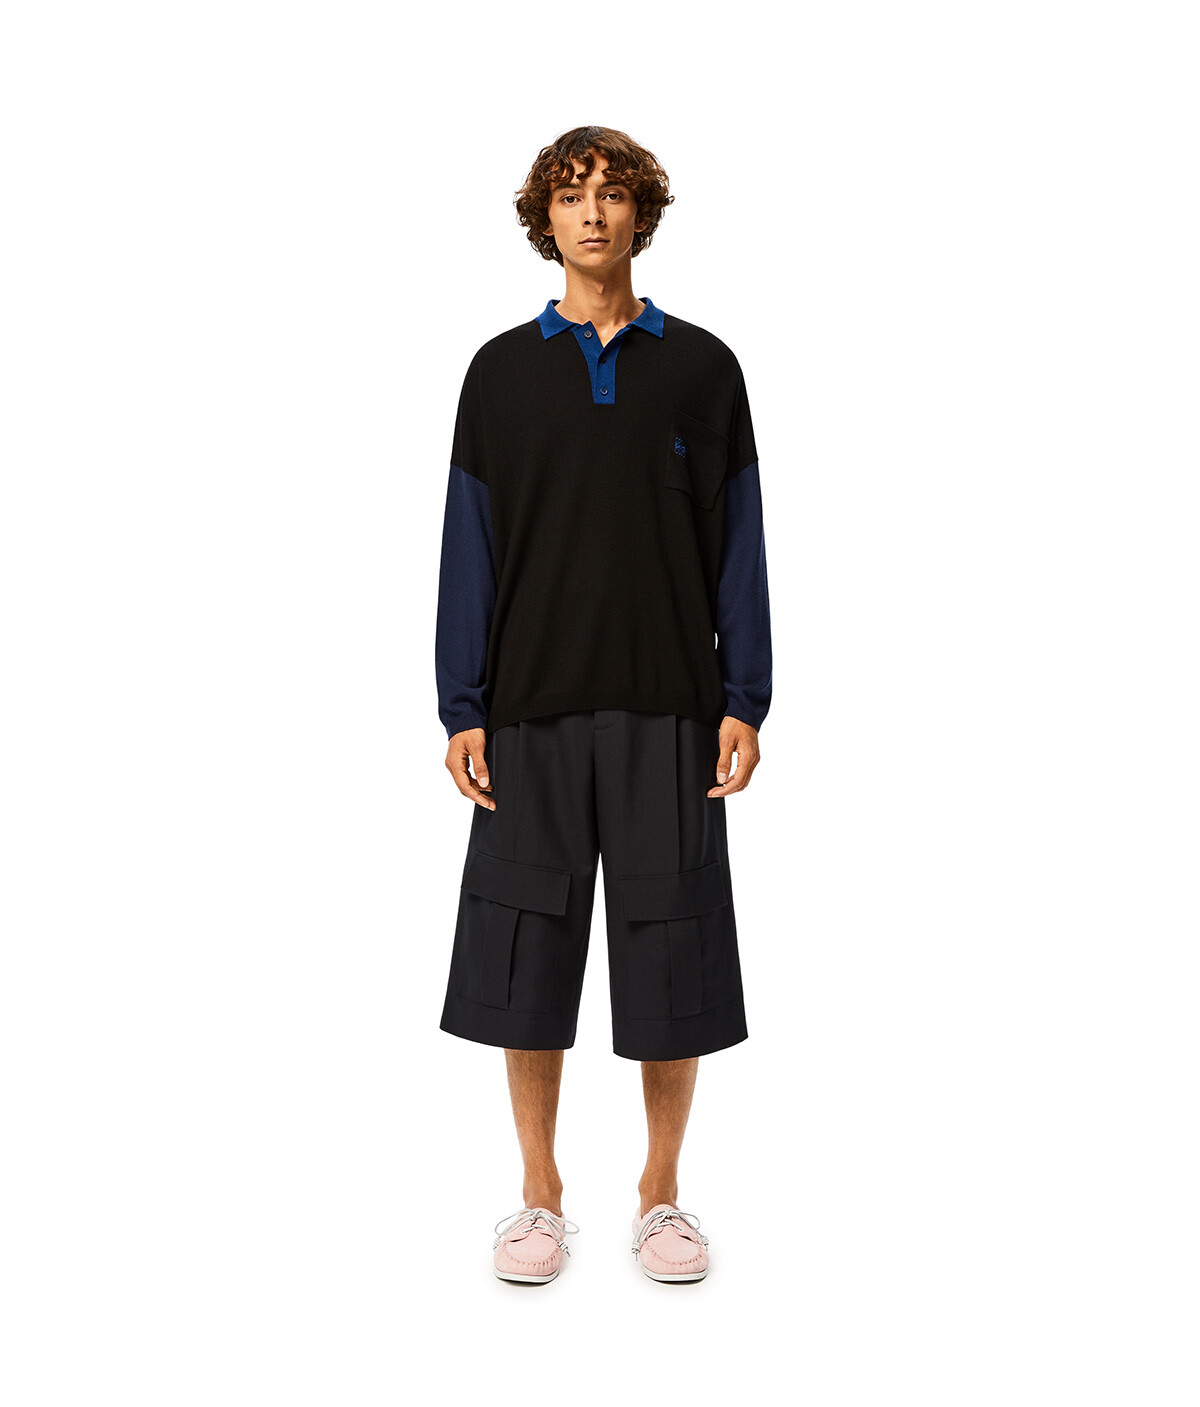 LOEWE Ov Poloneck Sweater Black/Blue front